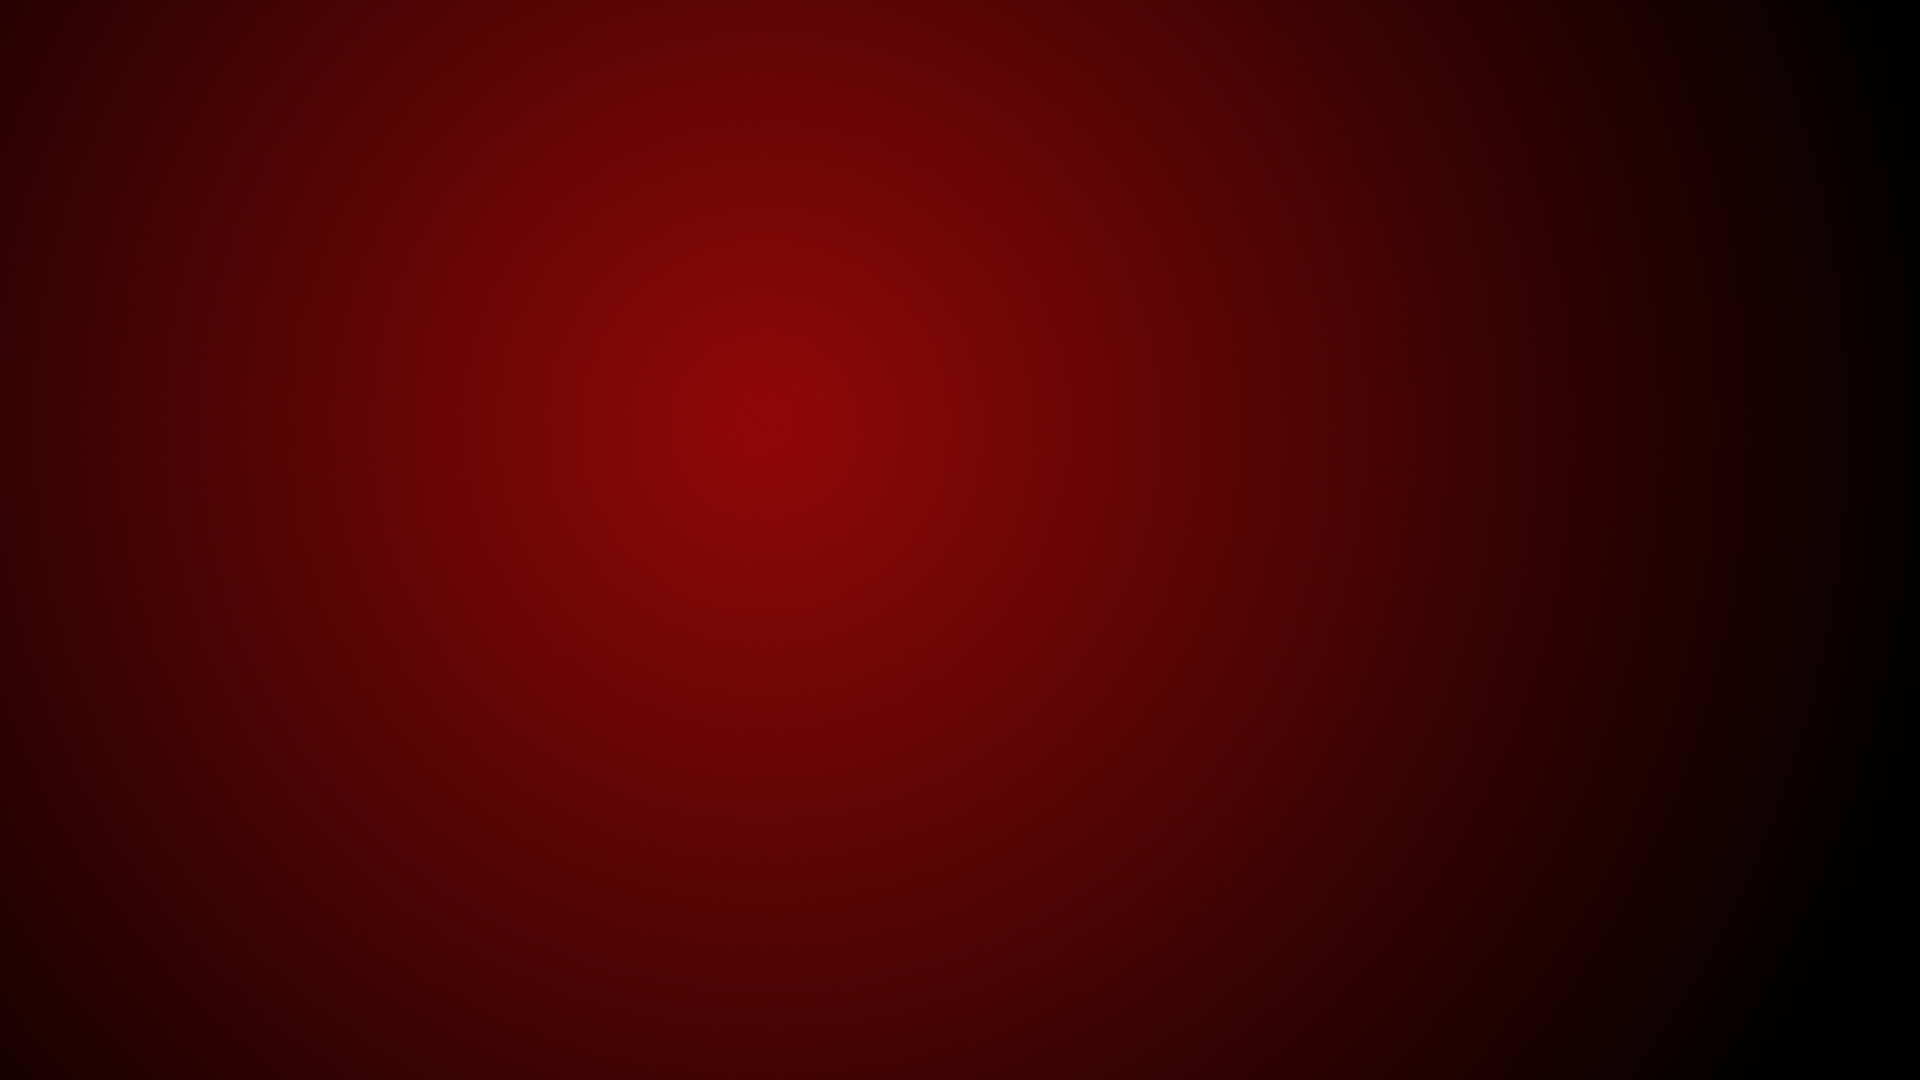 backgrounds-gradient-red-red-background-844915-1920x1080 - Christ's ...